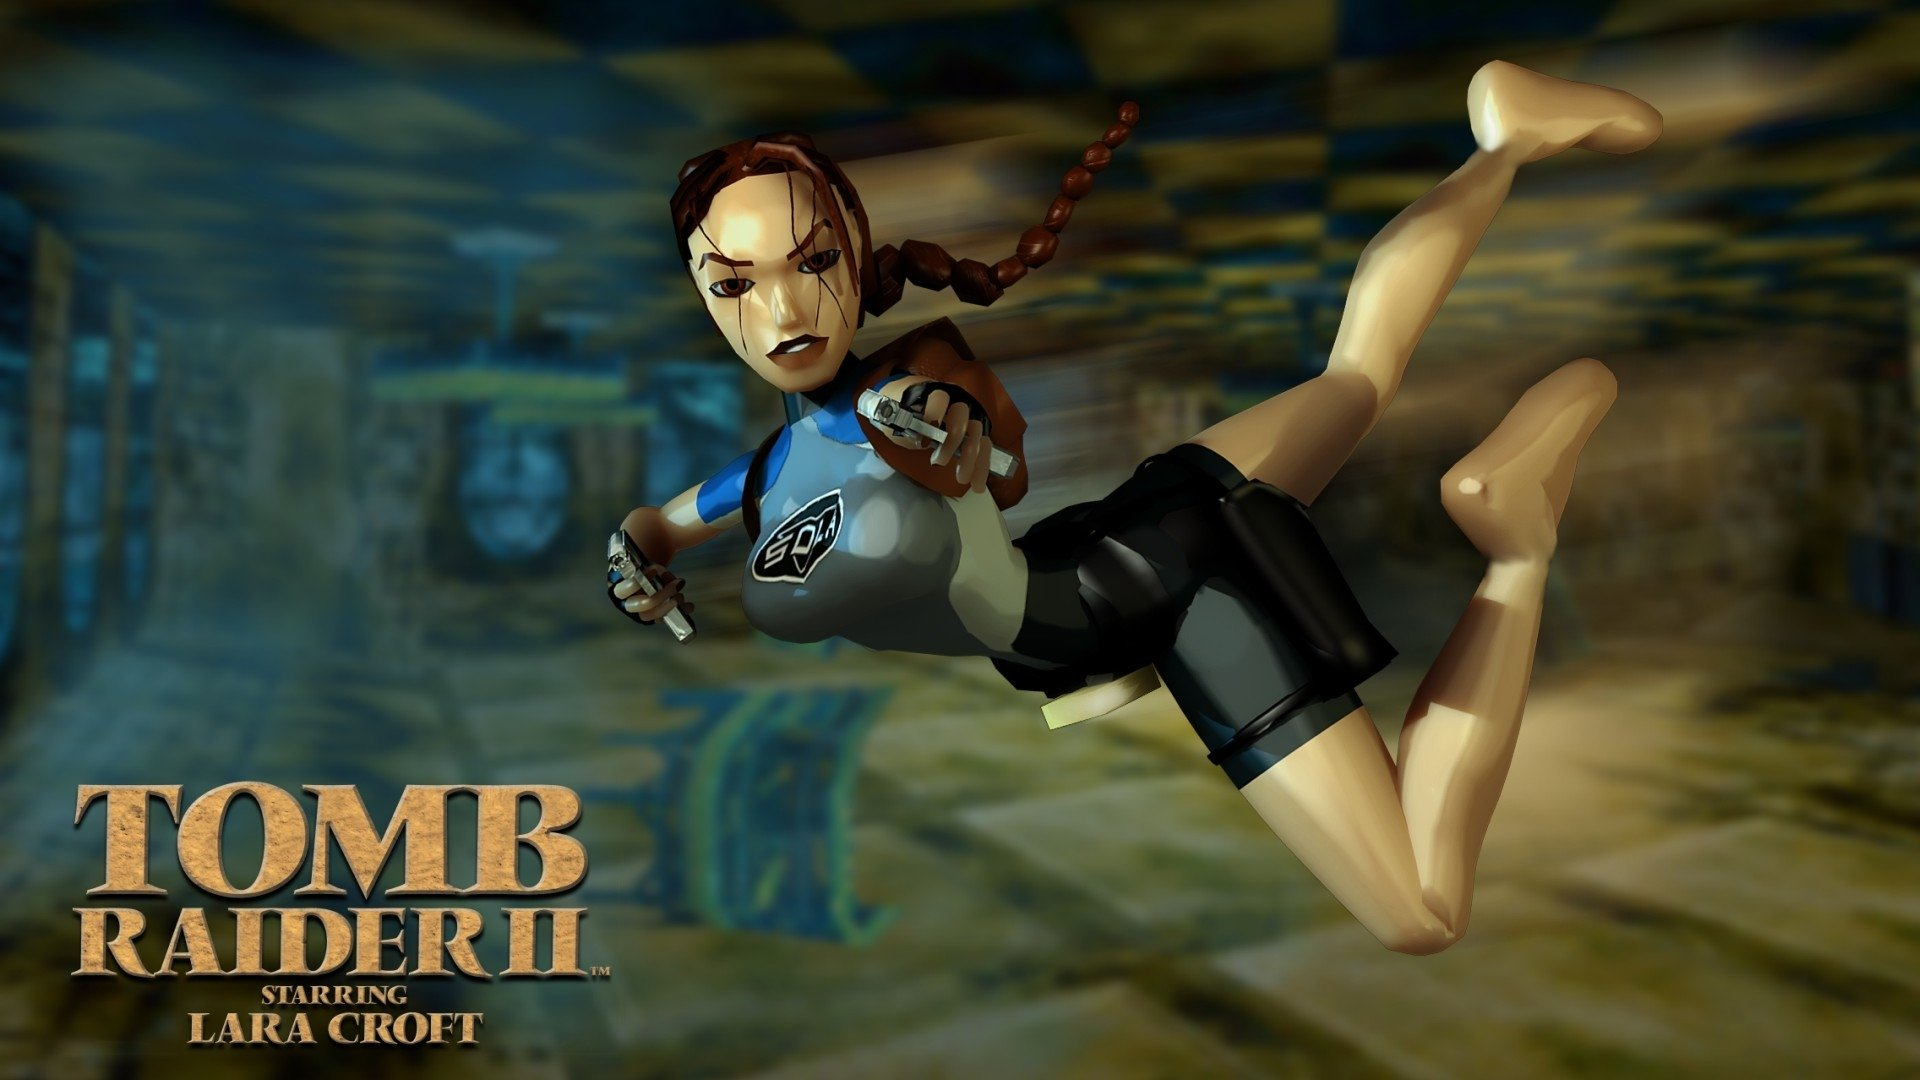 5 Tomb Raider Ii Hd Wallpapers Background Images Wallpaper Abyss